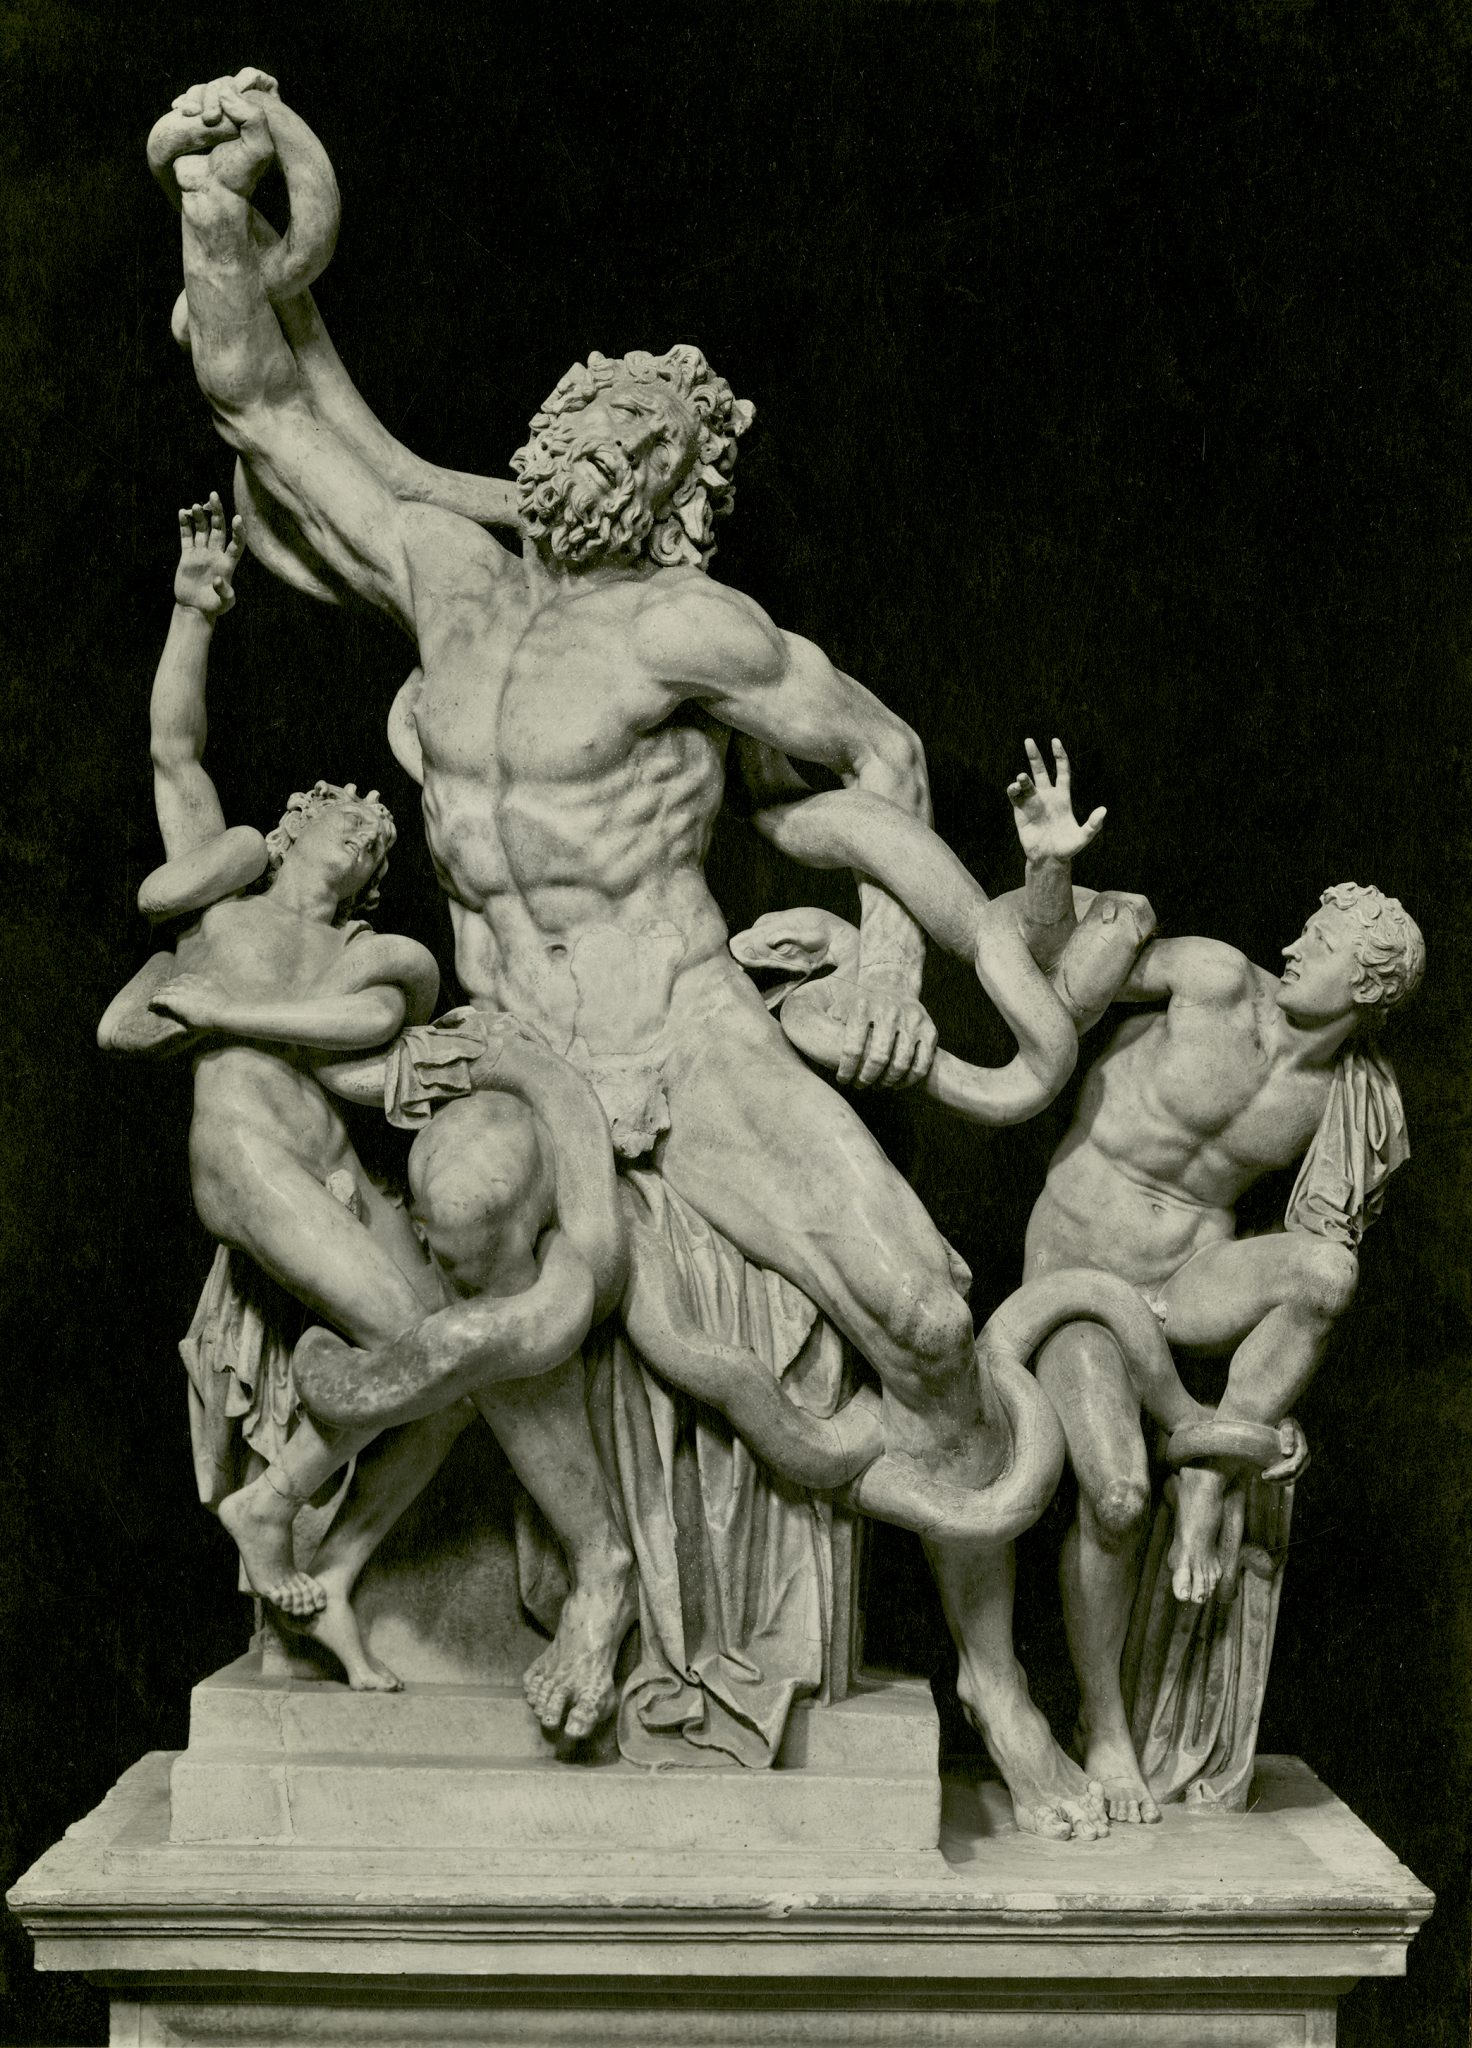 <p><i>The Laocoon and His Sons.</i></p><p>2nd c. BCE- 1st c. CE, attributed to Agesander,</p><p>Athenodorus and Polydorus. Marble.</p><p>Museo Pio-Clementino, Vatican City.</p>